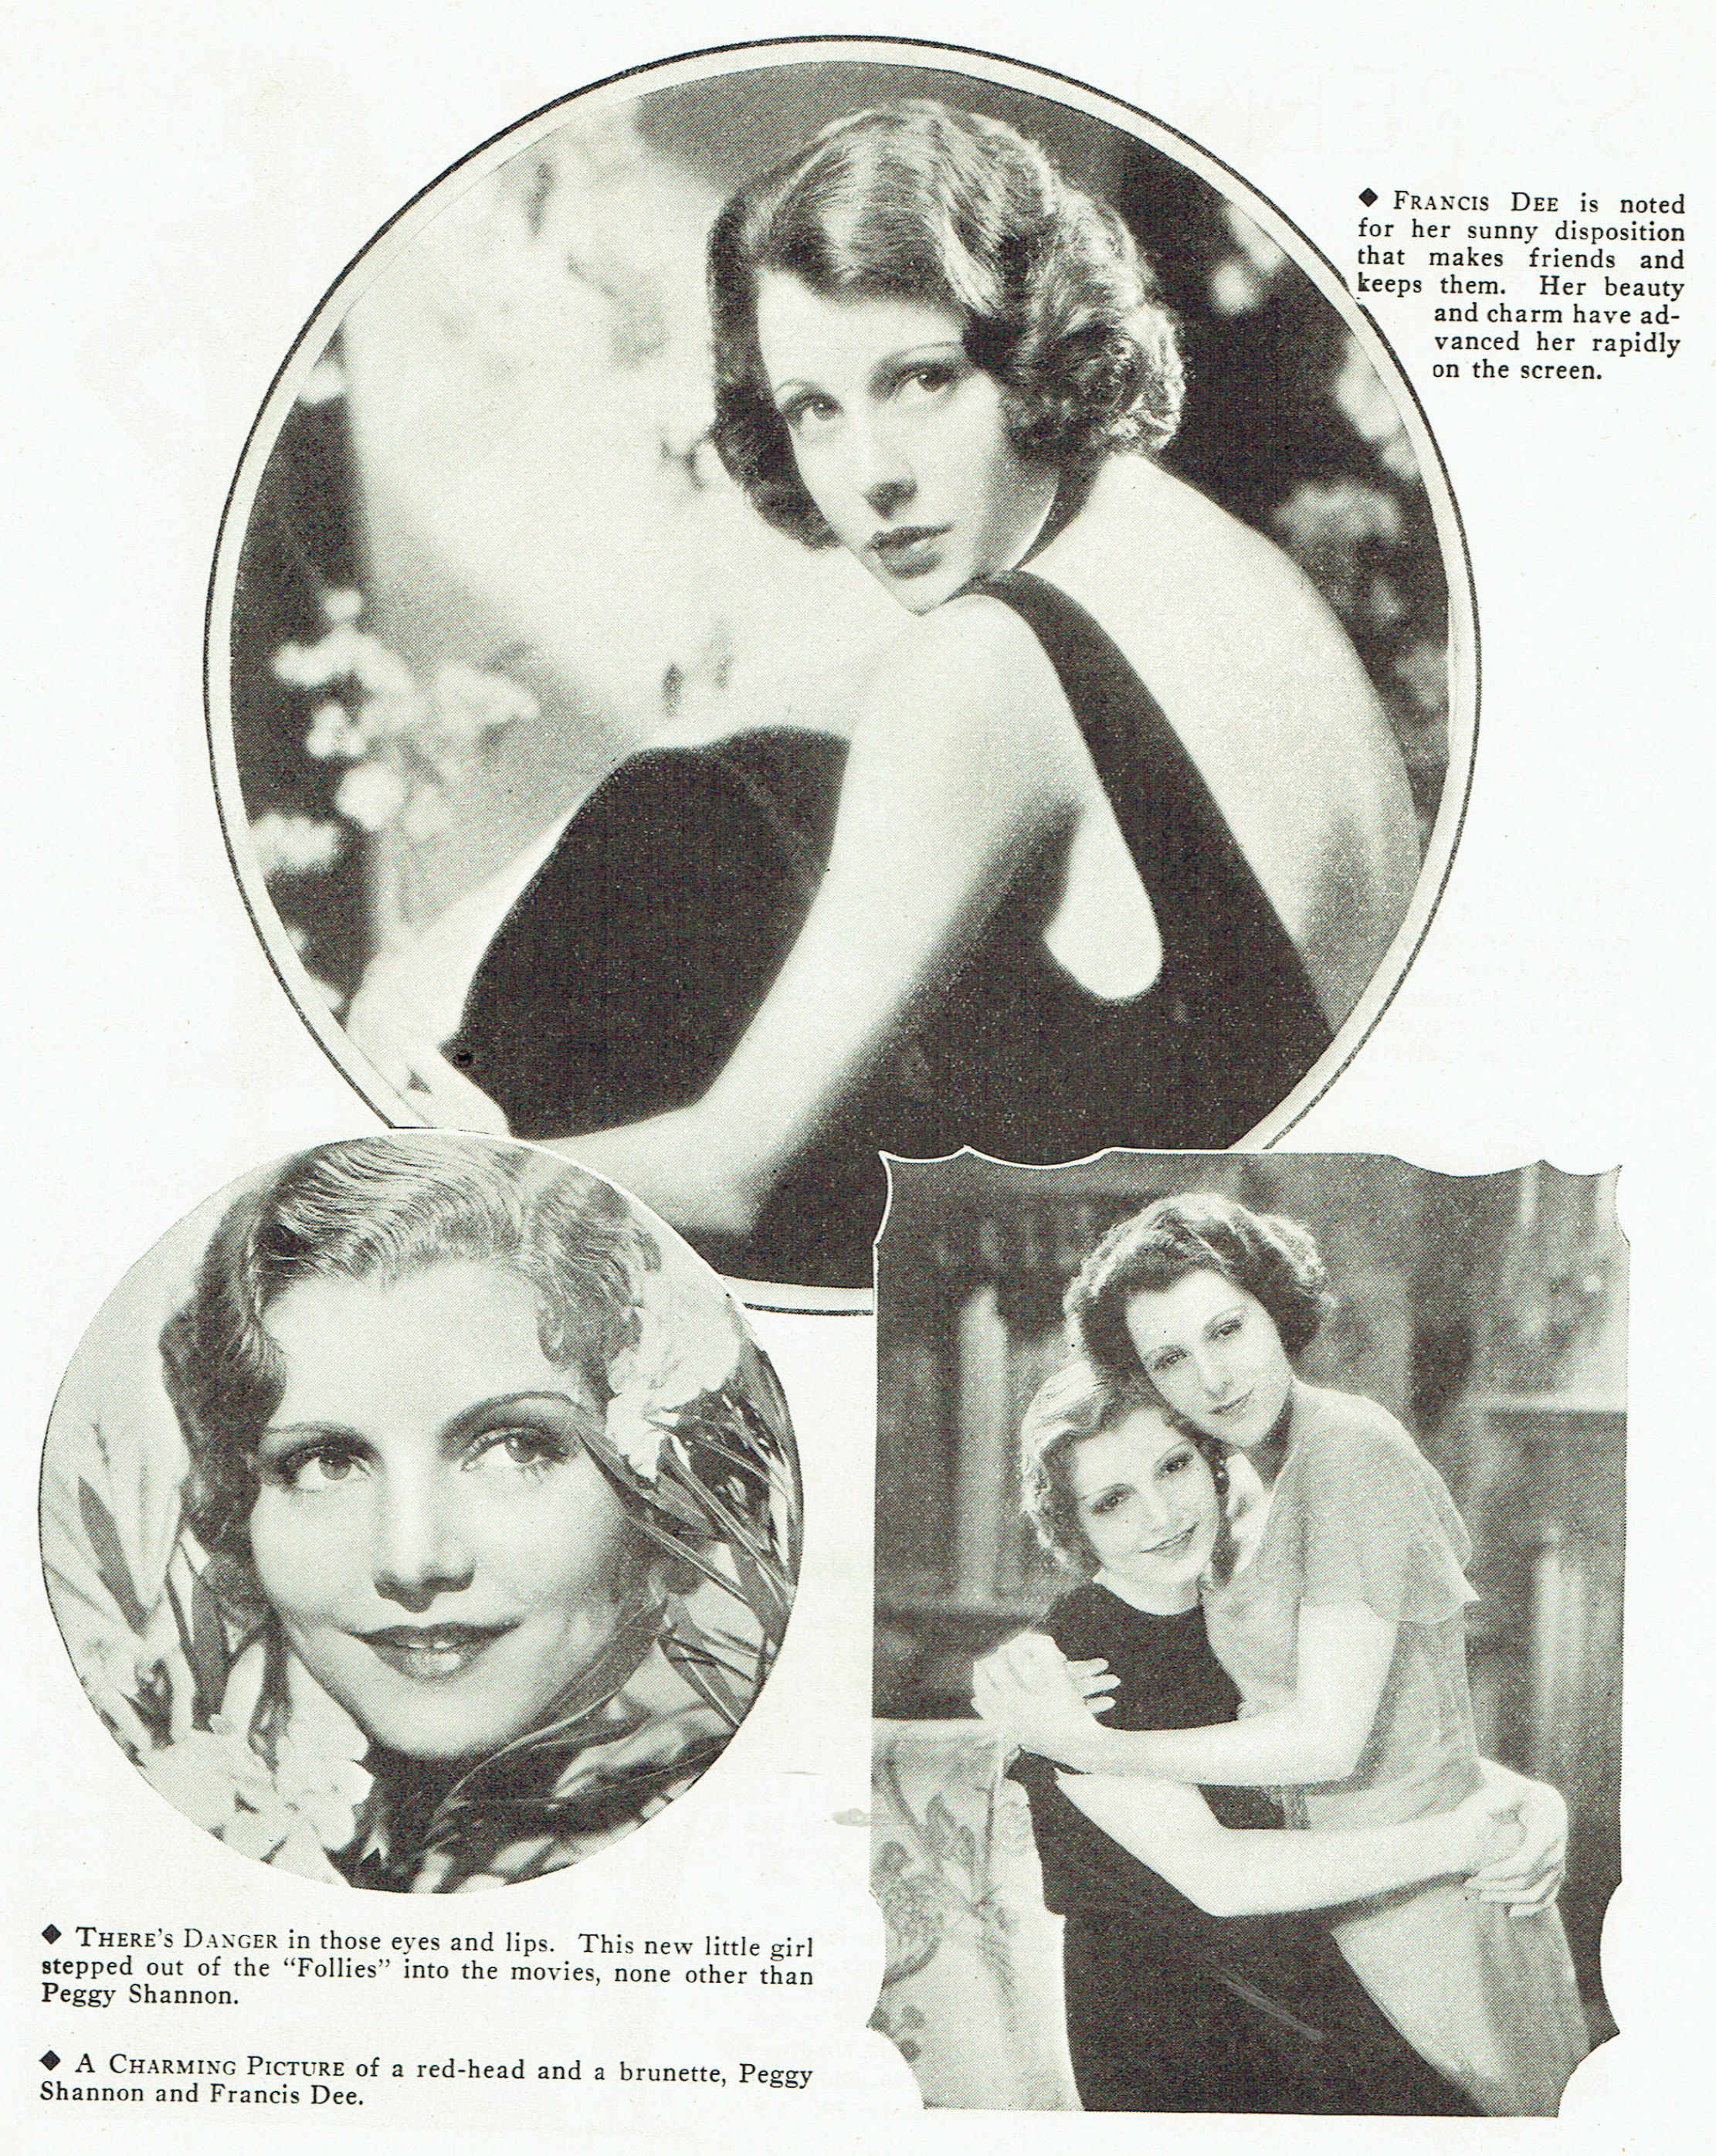 carole lombard publix theatre screen review april 1932oa